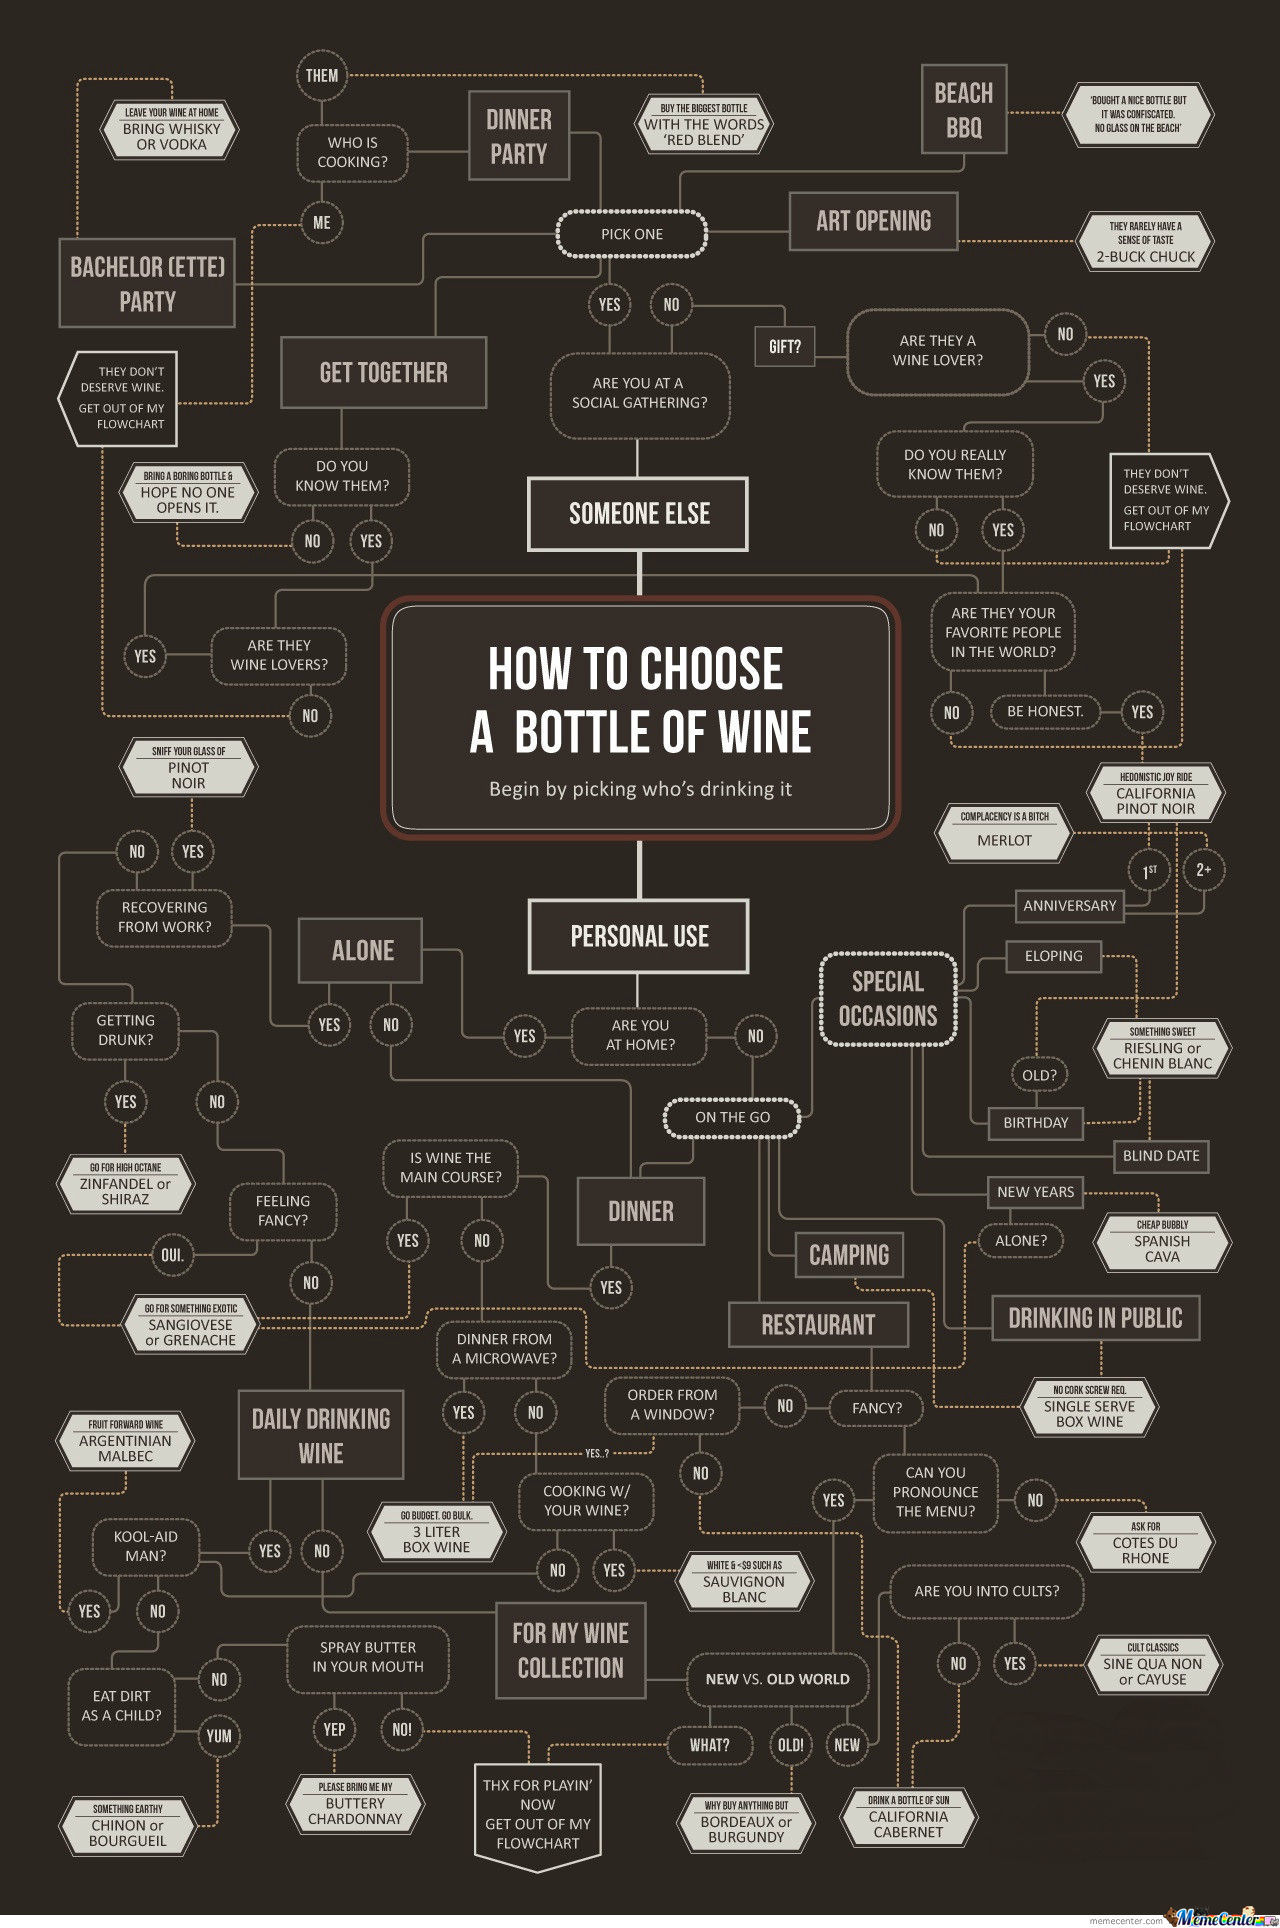 How To Choose A Bottle Of Wine?